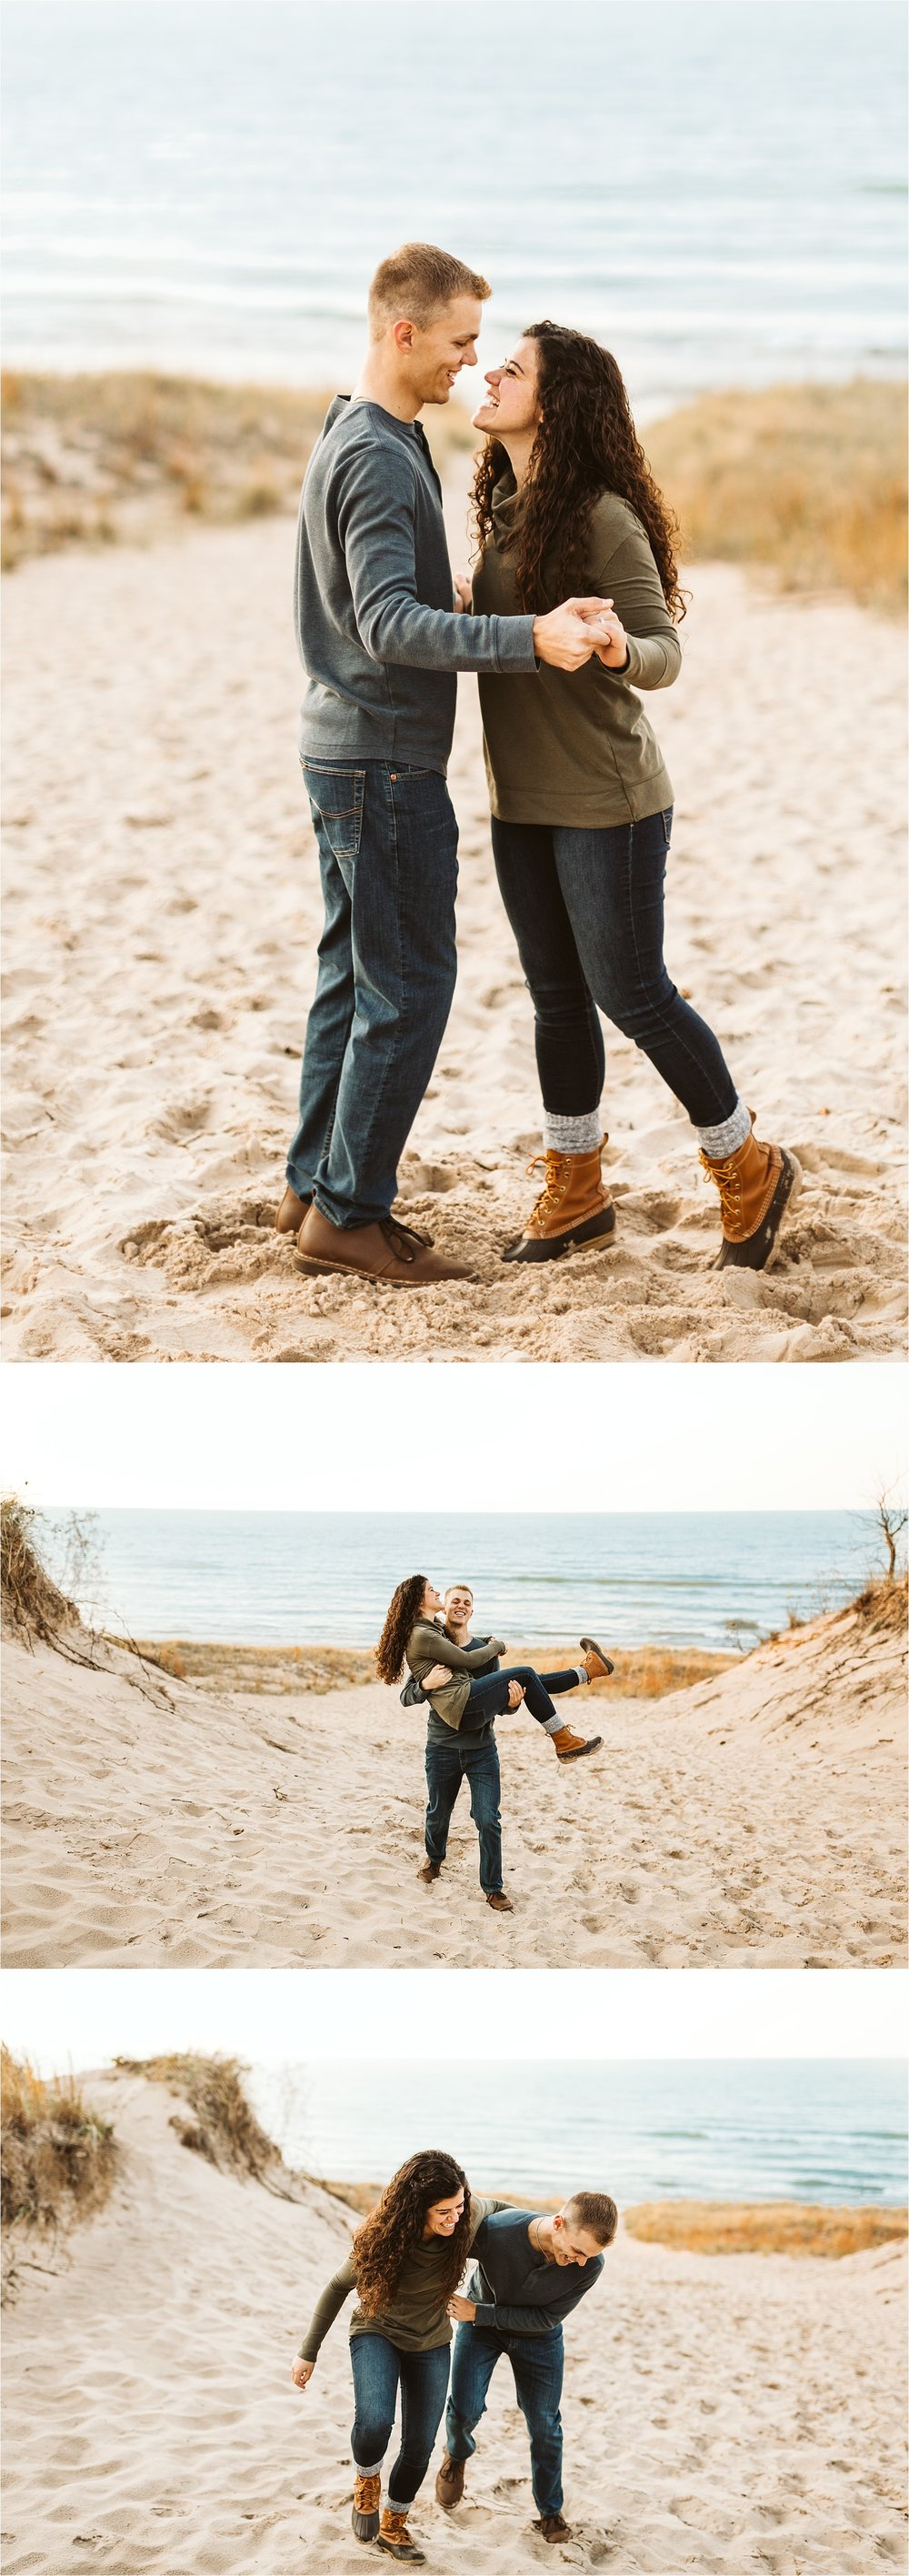 Indiana Dunes Beach Engagement Session_0020.jpg